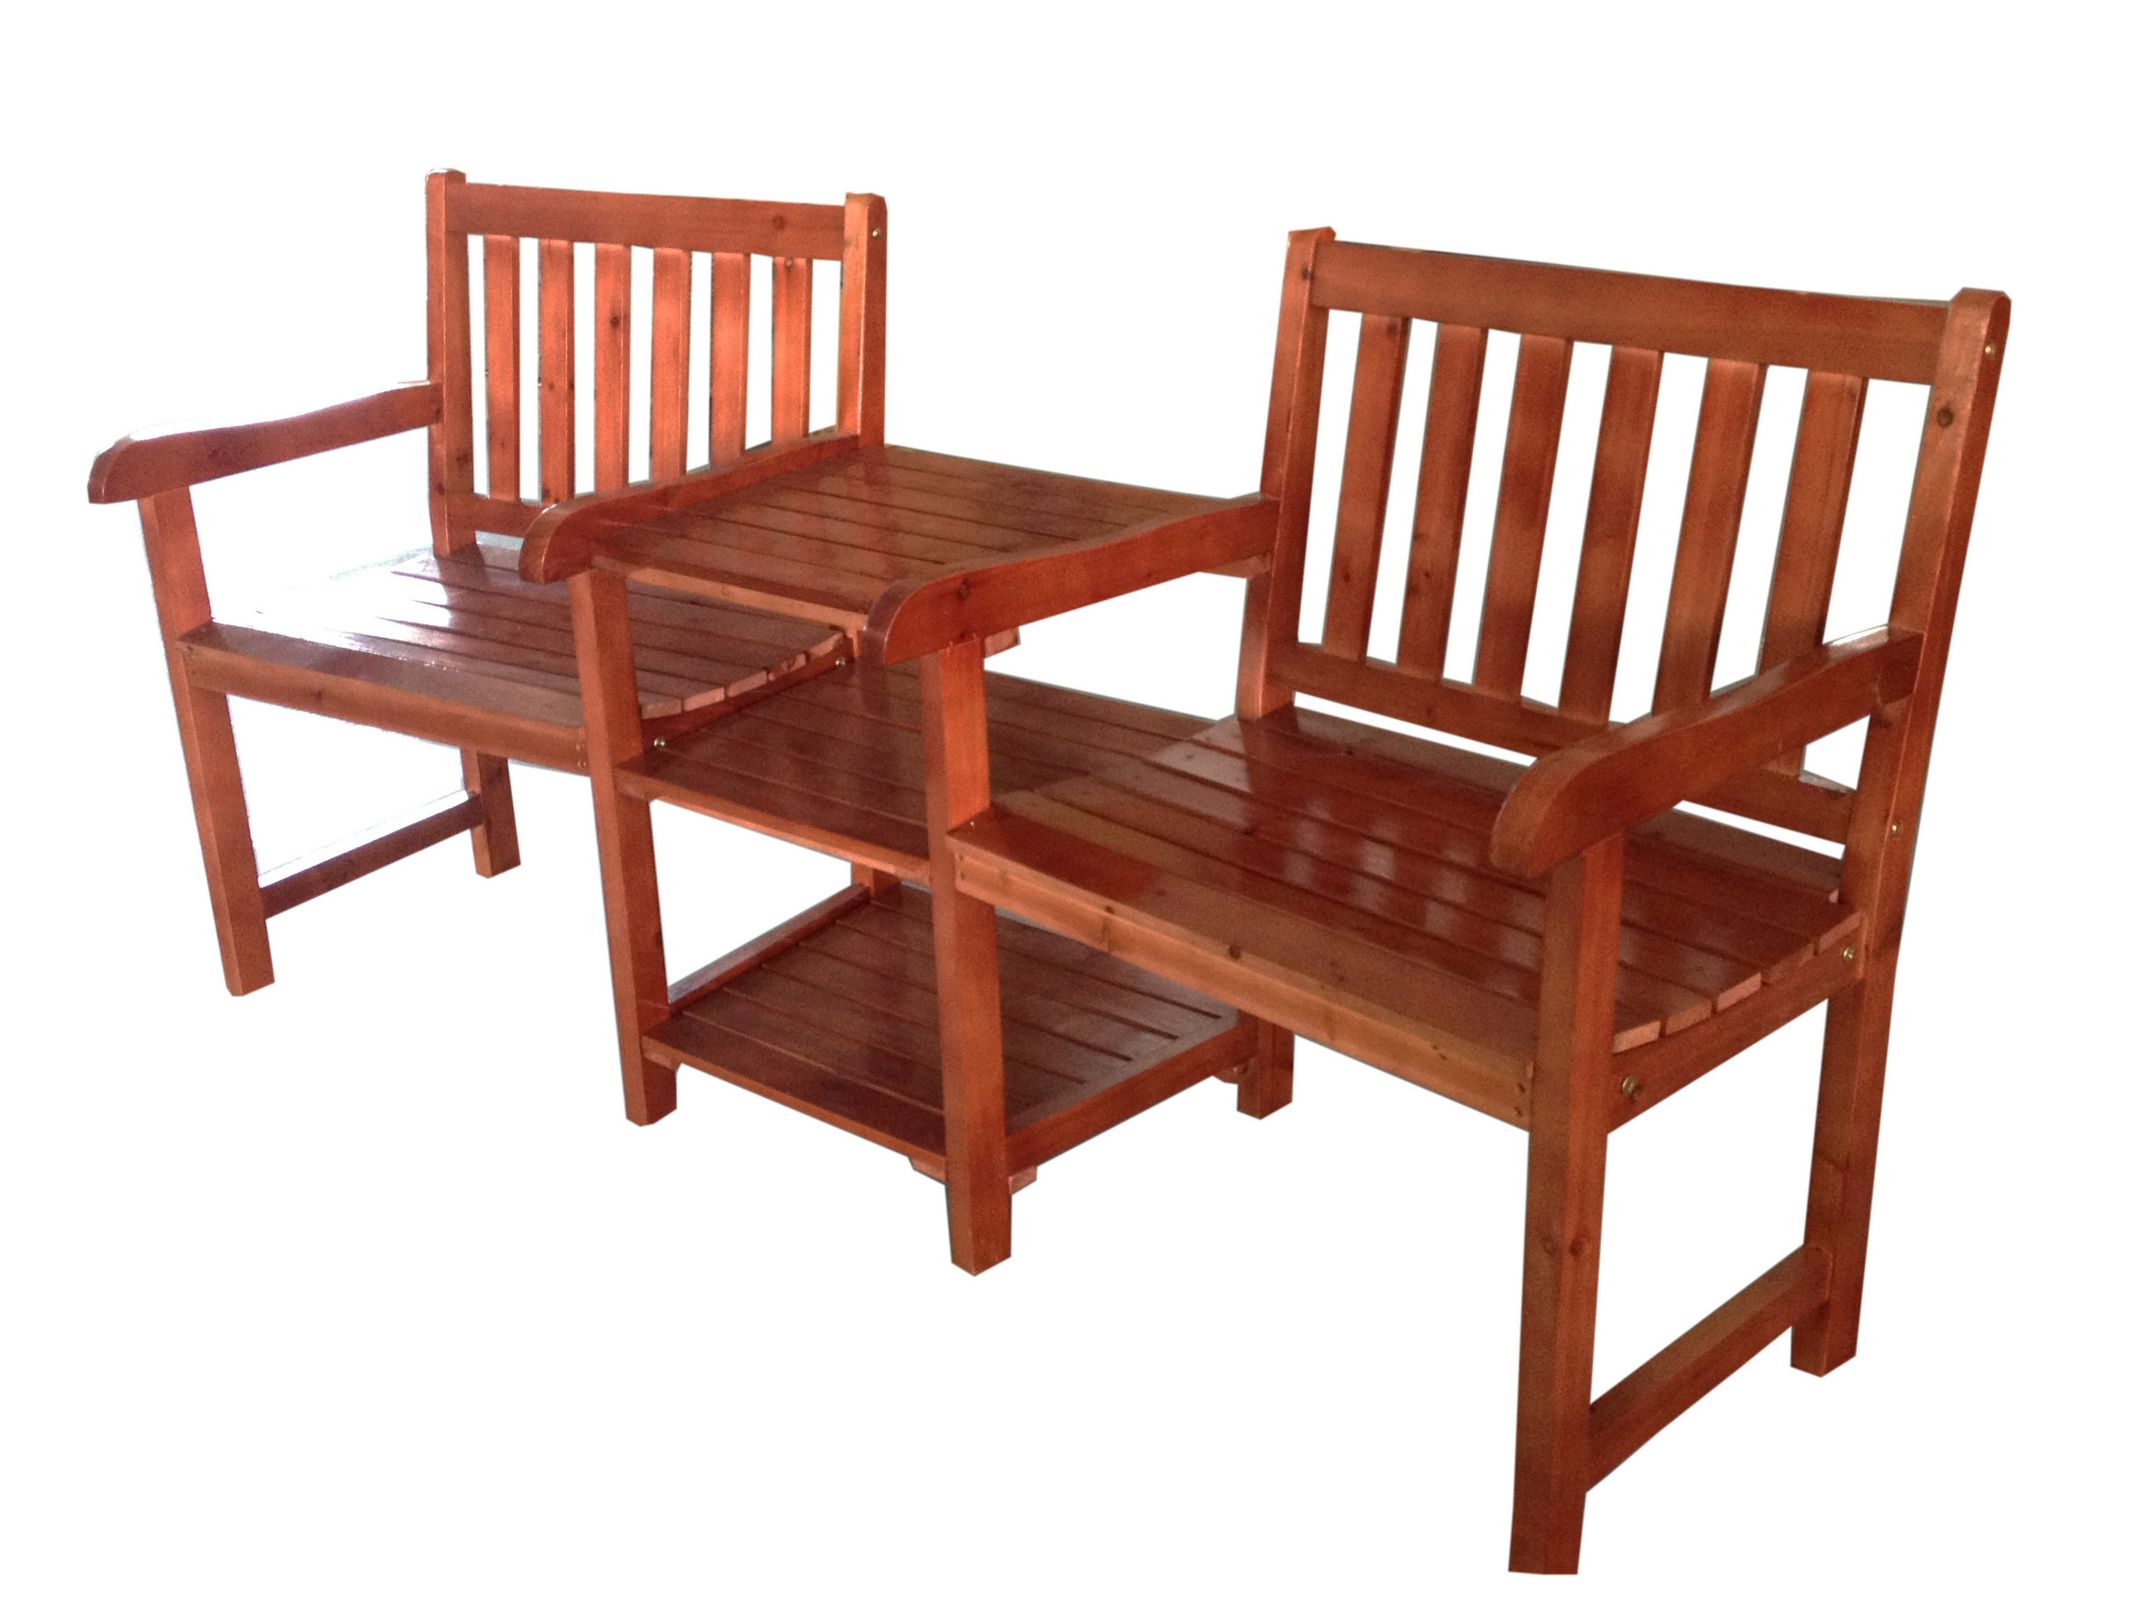 2 seater wooden companion bench chair table tawny outdoor for Outdoor furniture benches